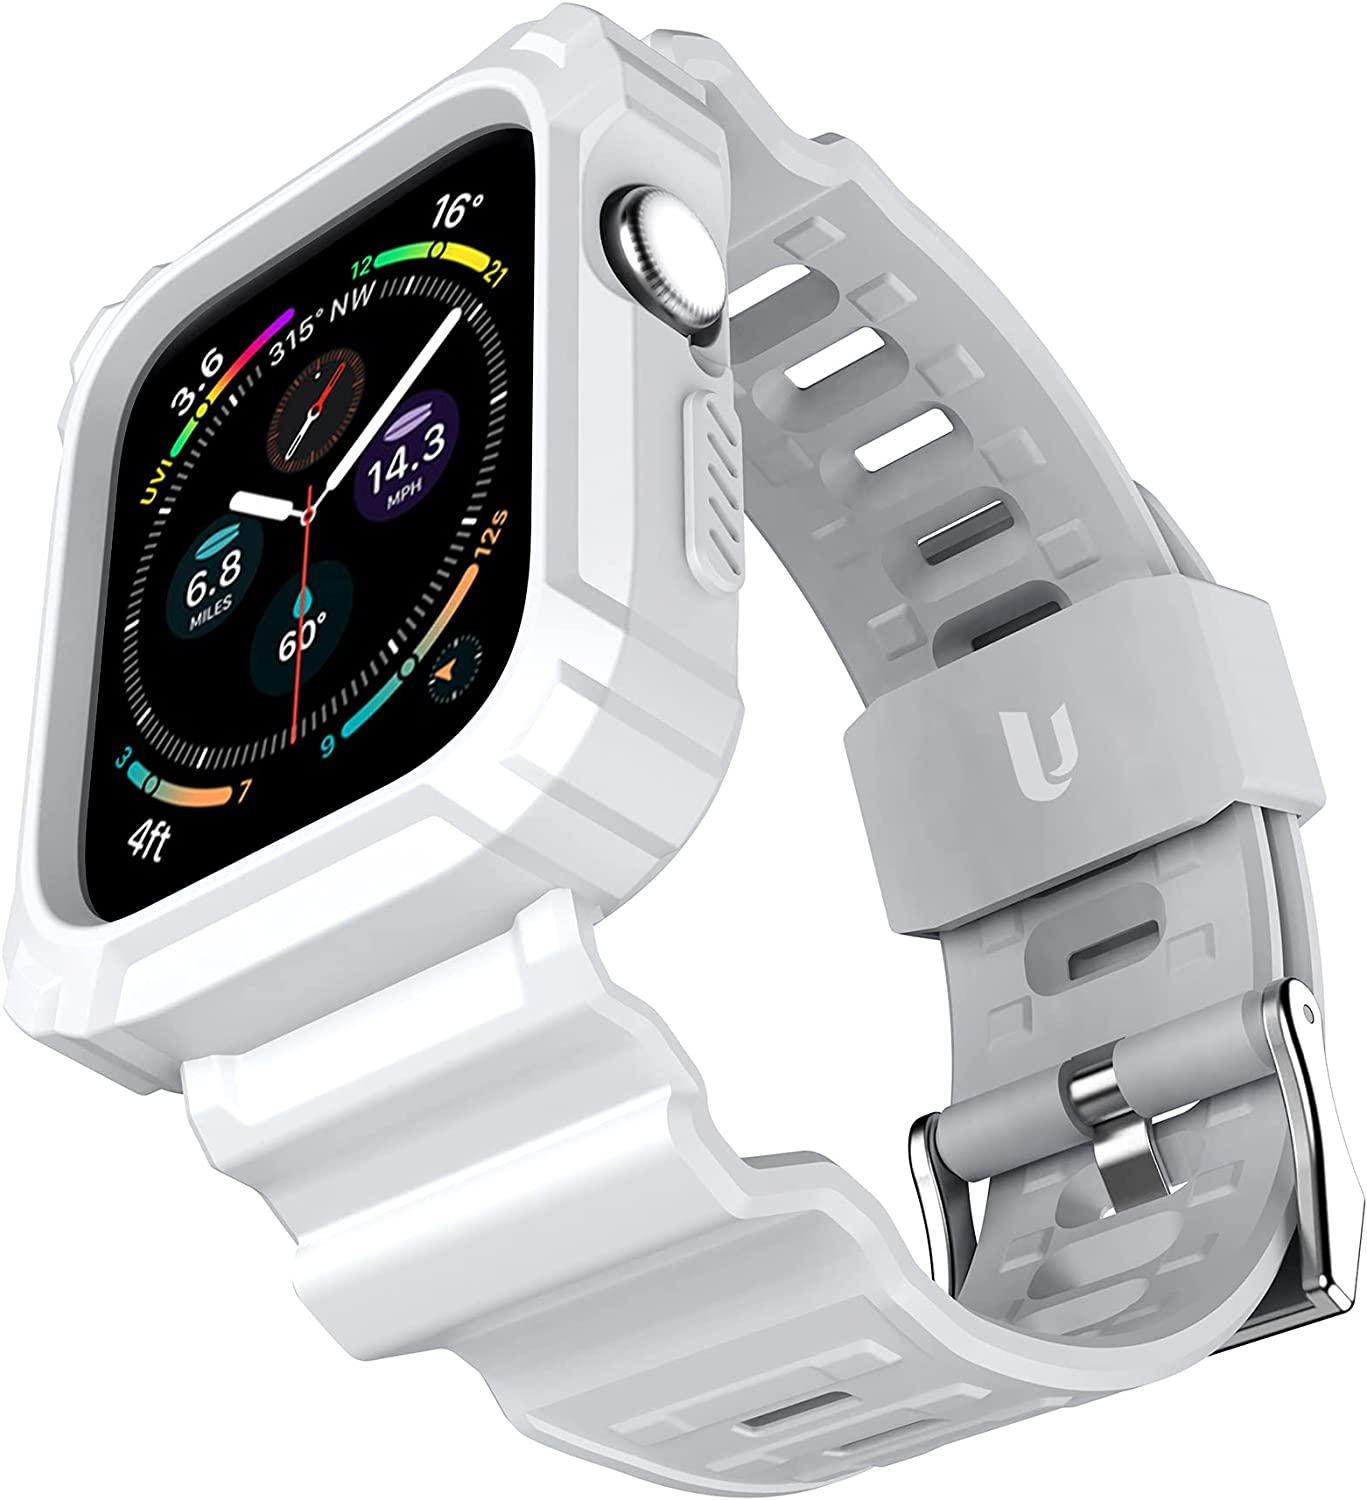 URBANITE for Apple Watch Band 40mm 38mm with Bumper Case, Rugged Protective Drop Shock Resistant Case with TPU Band Strap Fit for iWatch Series 3 4 5 6 SE Men Women Sport Military Style(White)